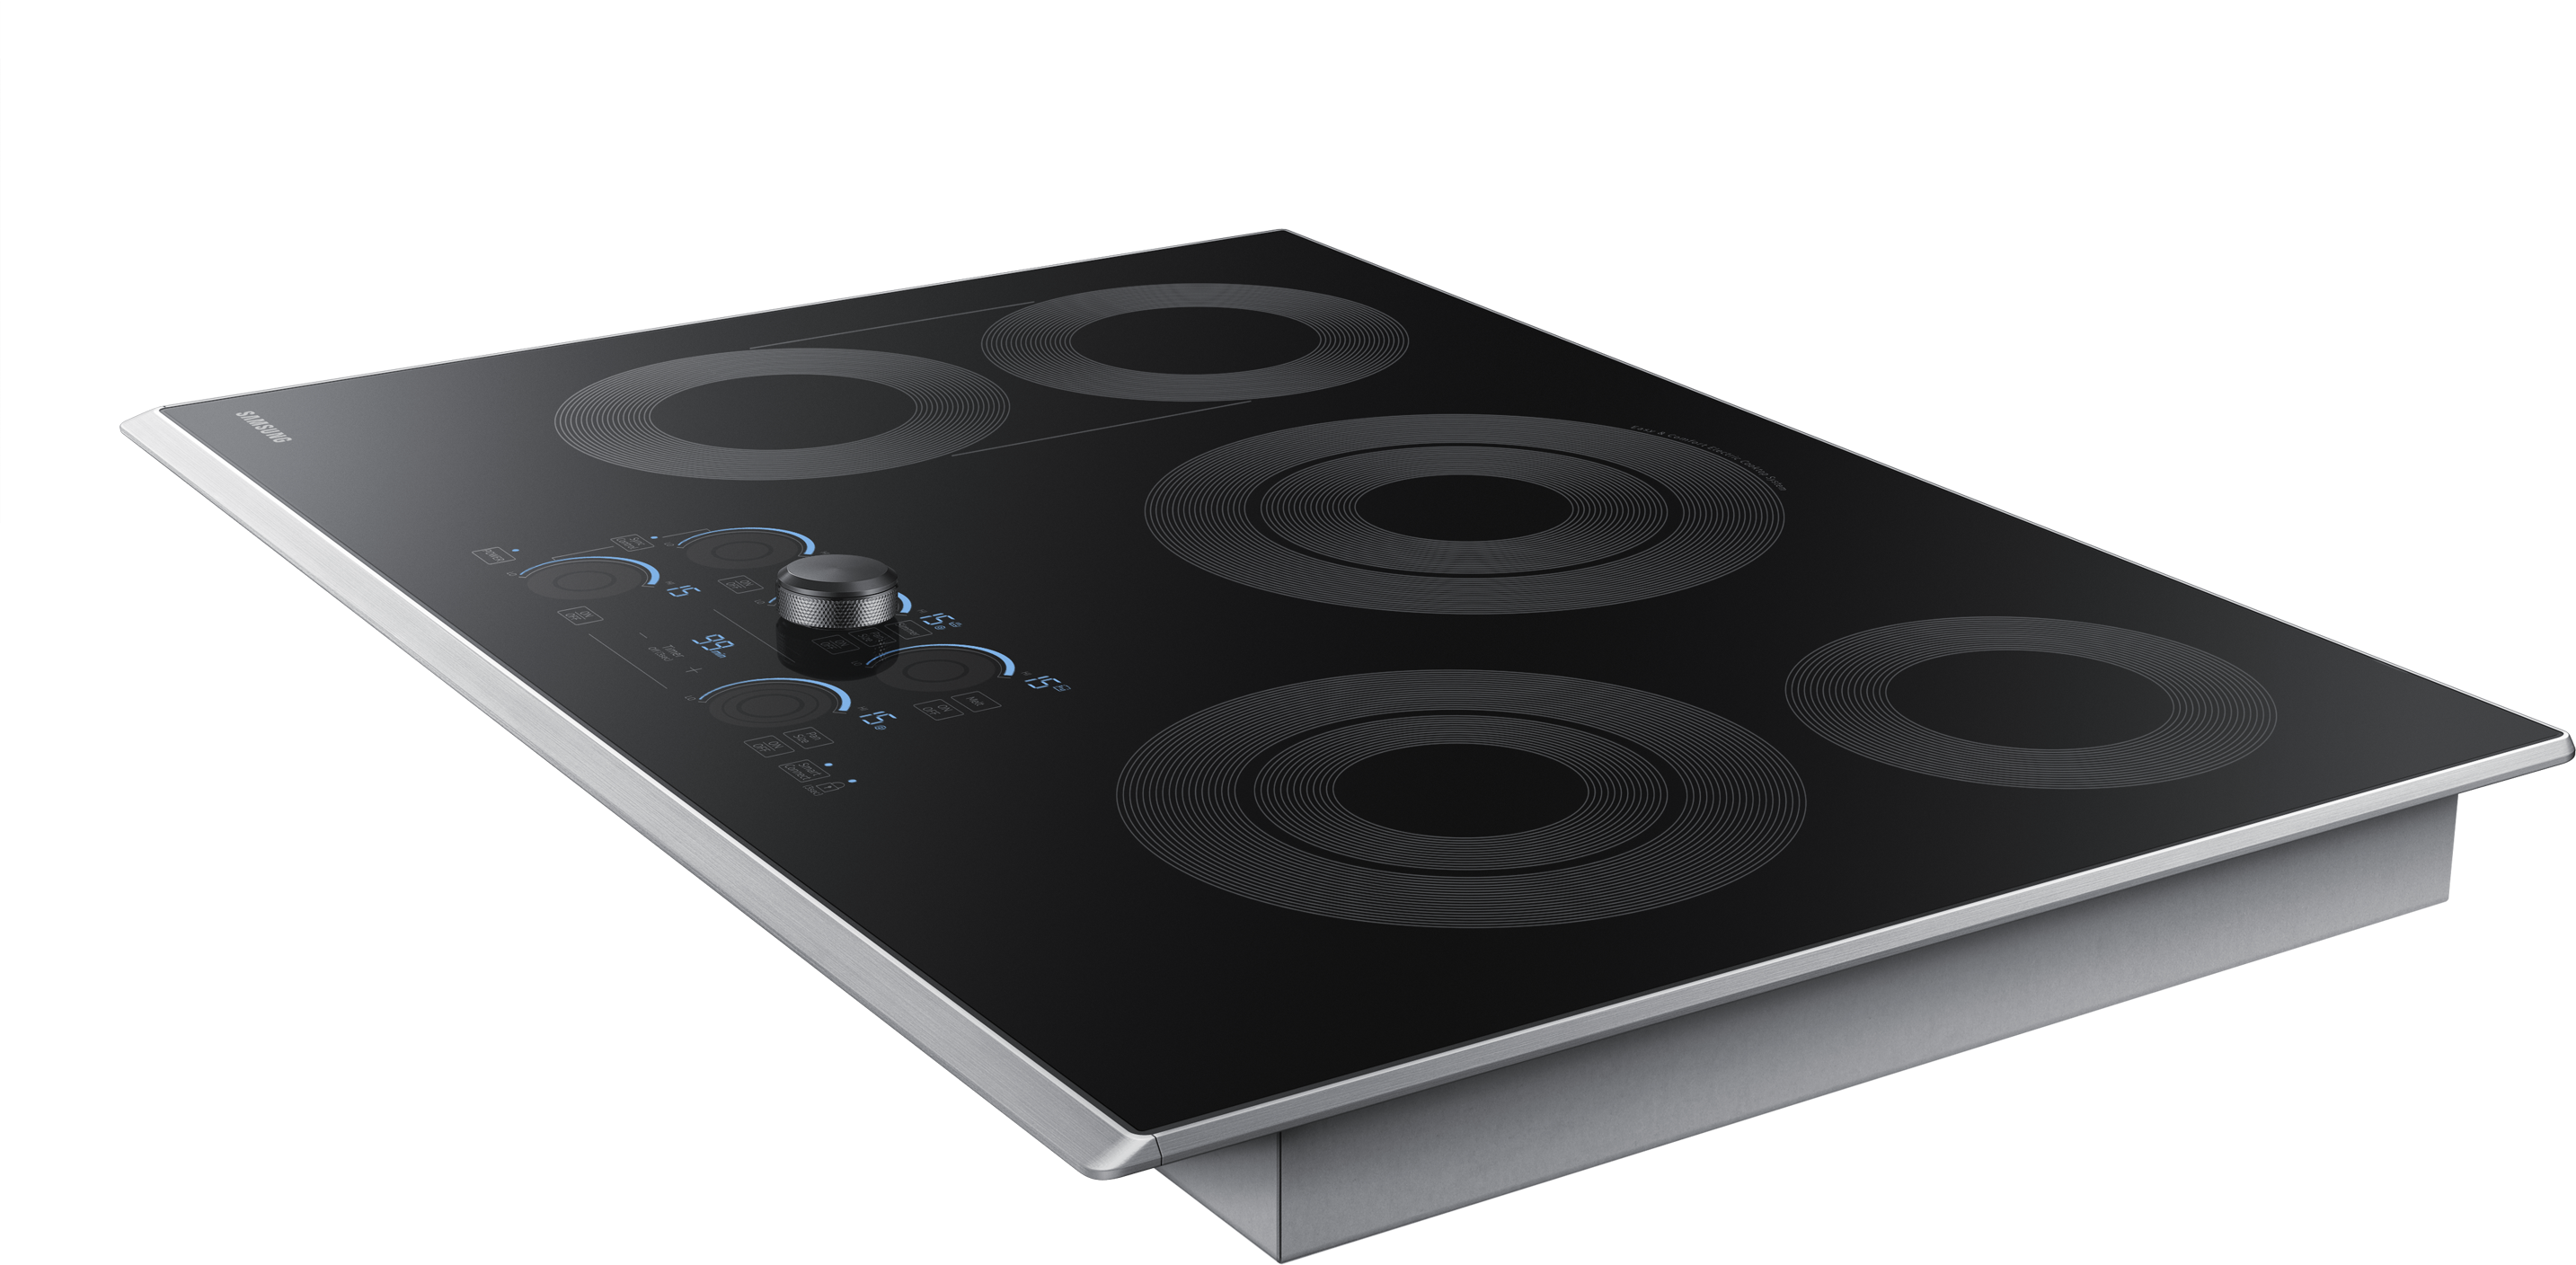 Electrical Cooktops Market 2021 – Industry Segmentation, CAGR Status,  Leading Trends, Forecast to 2026 – The Courier